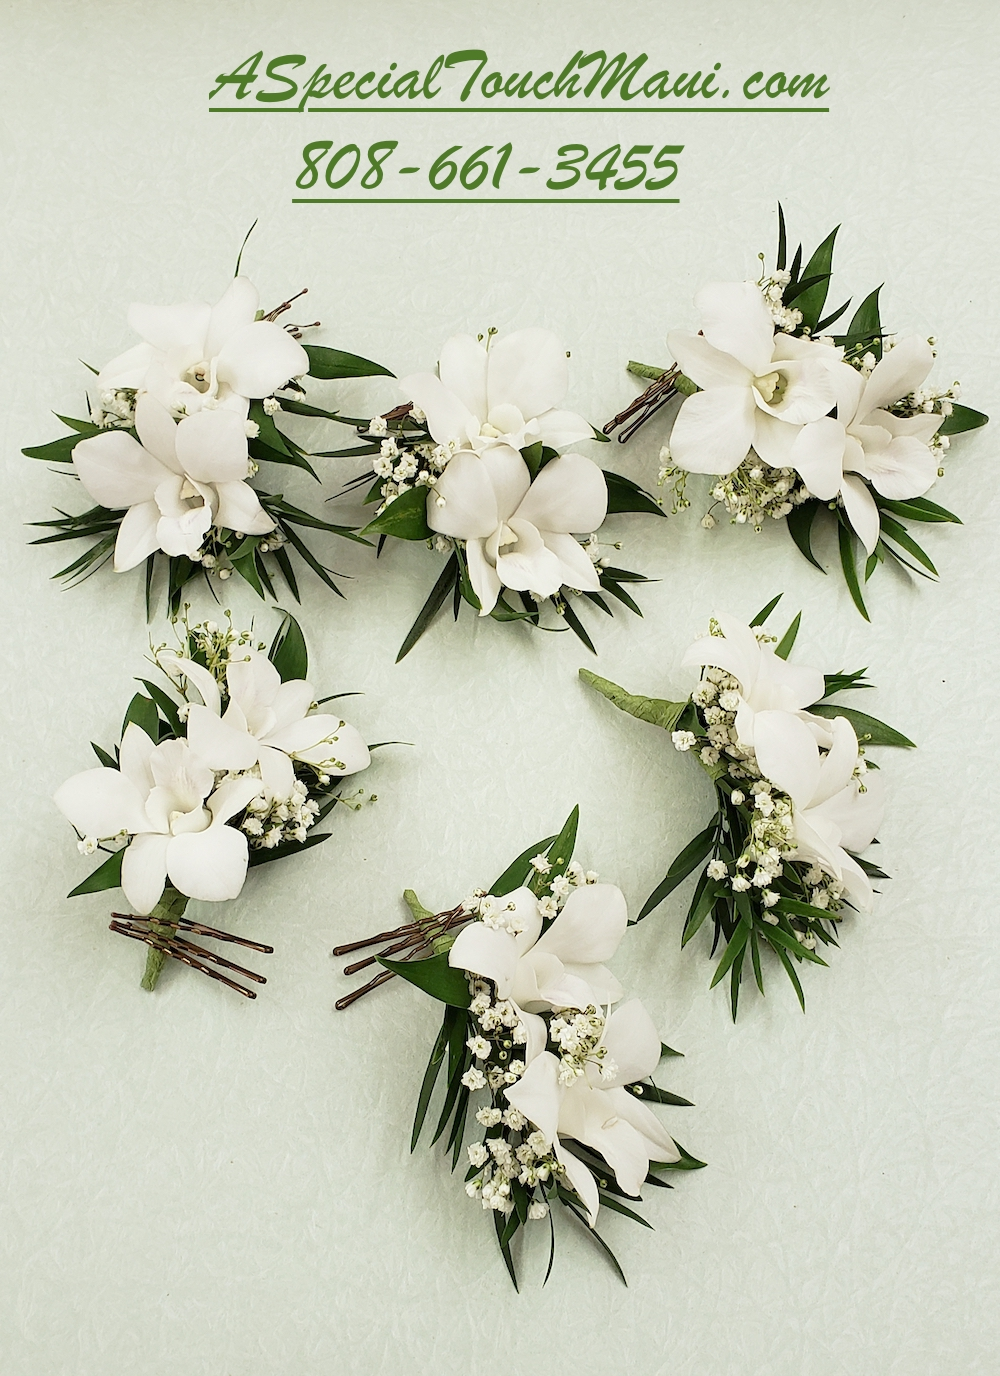 Double Orchid Hair Flowers $19.95 each